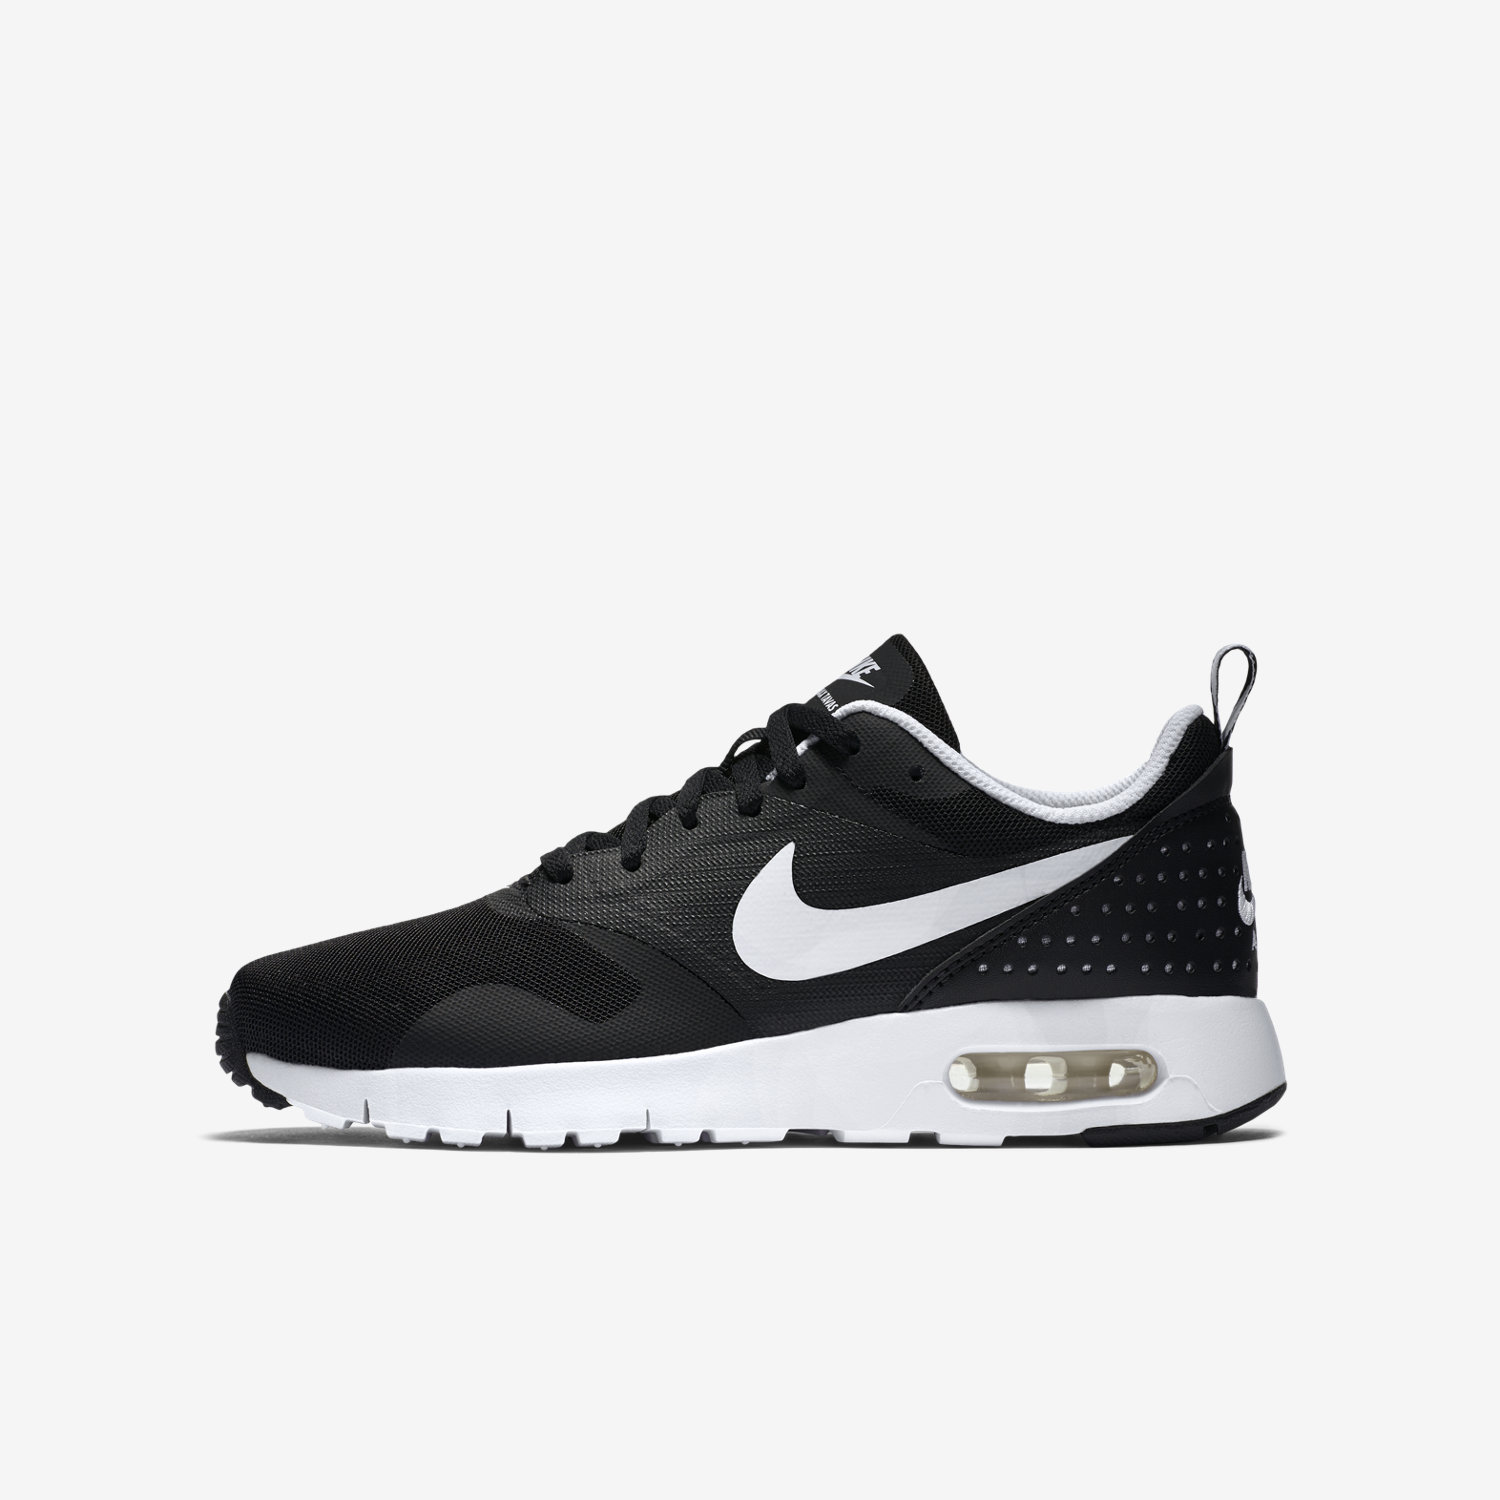 https://images.nike.com/is/image/DotCom/PDP_HERO_ZOOM/814443_001_A_PREM/air-max-tavas-big-kids-shoe.jpg